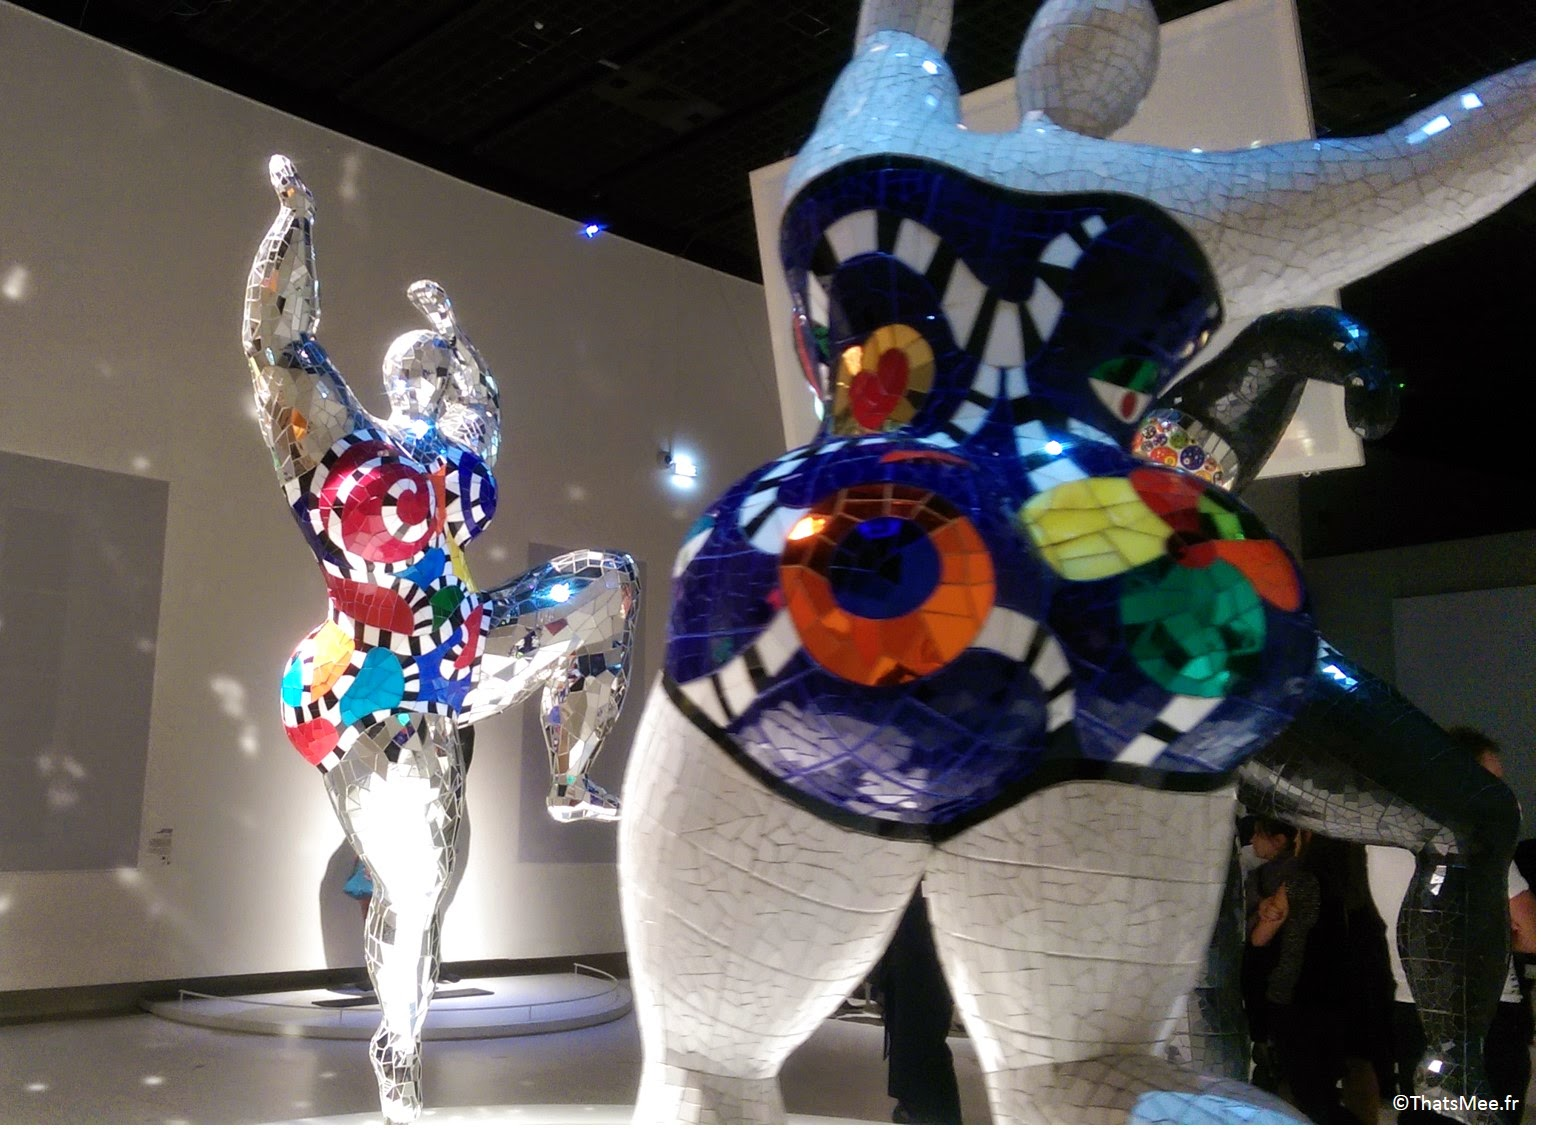 expo retrospective Niki de Saint-Phalle Grand Palais Paris art contemporain nanas sculpture féminisme racisme